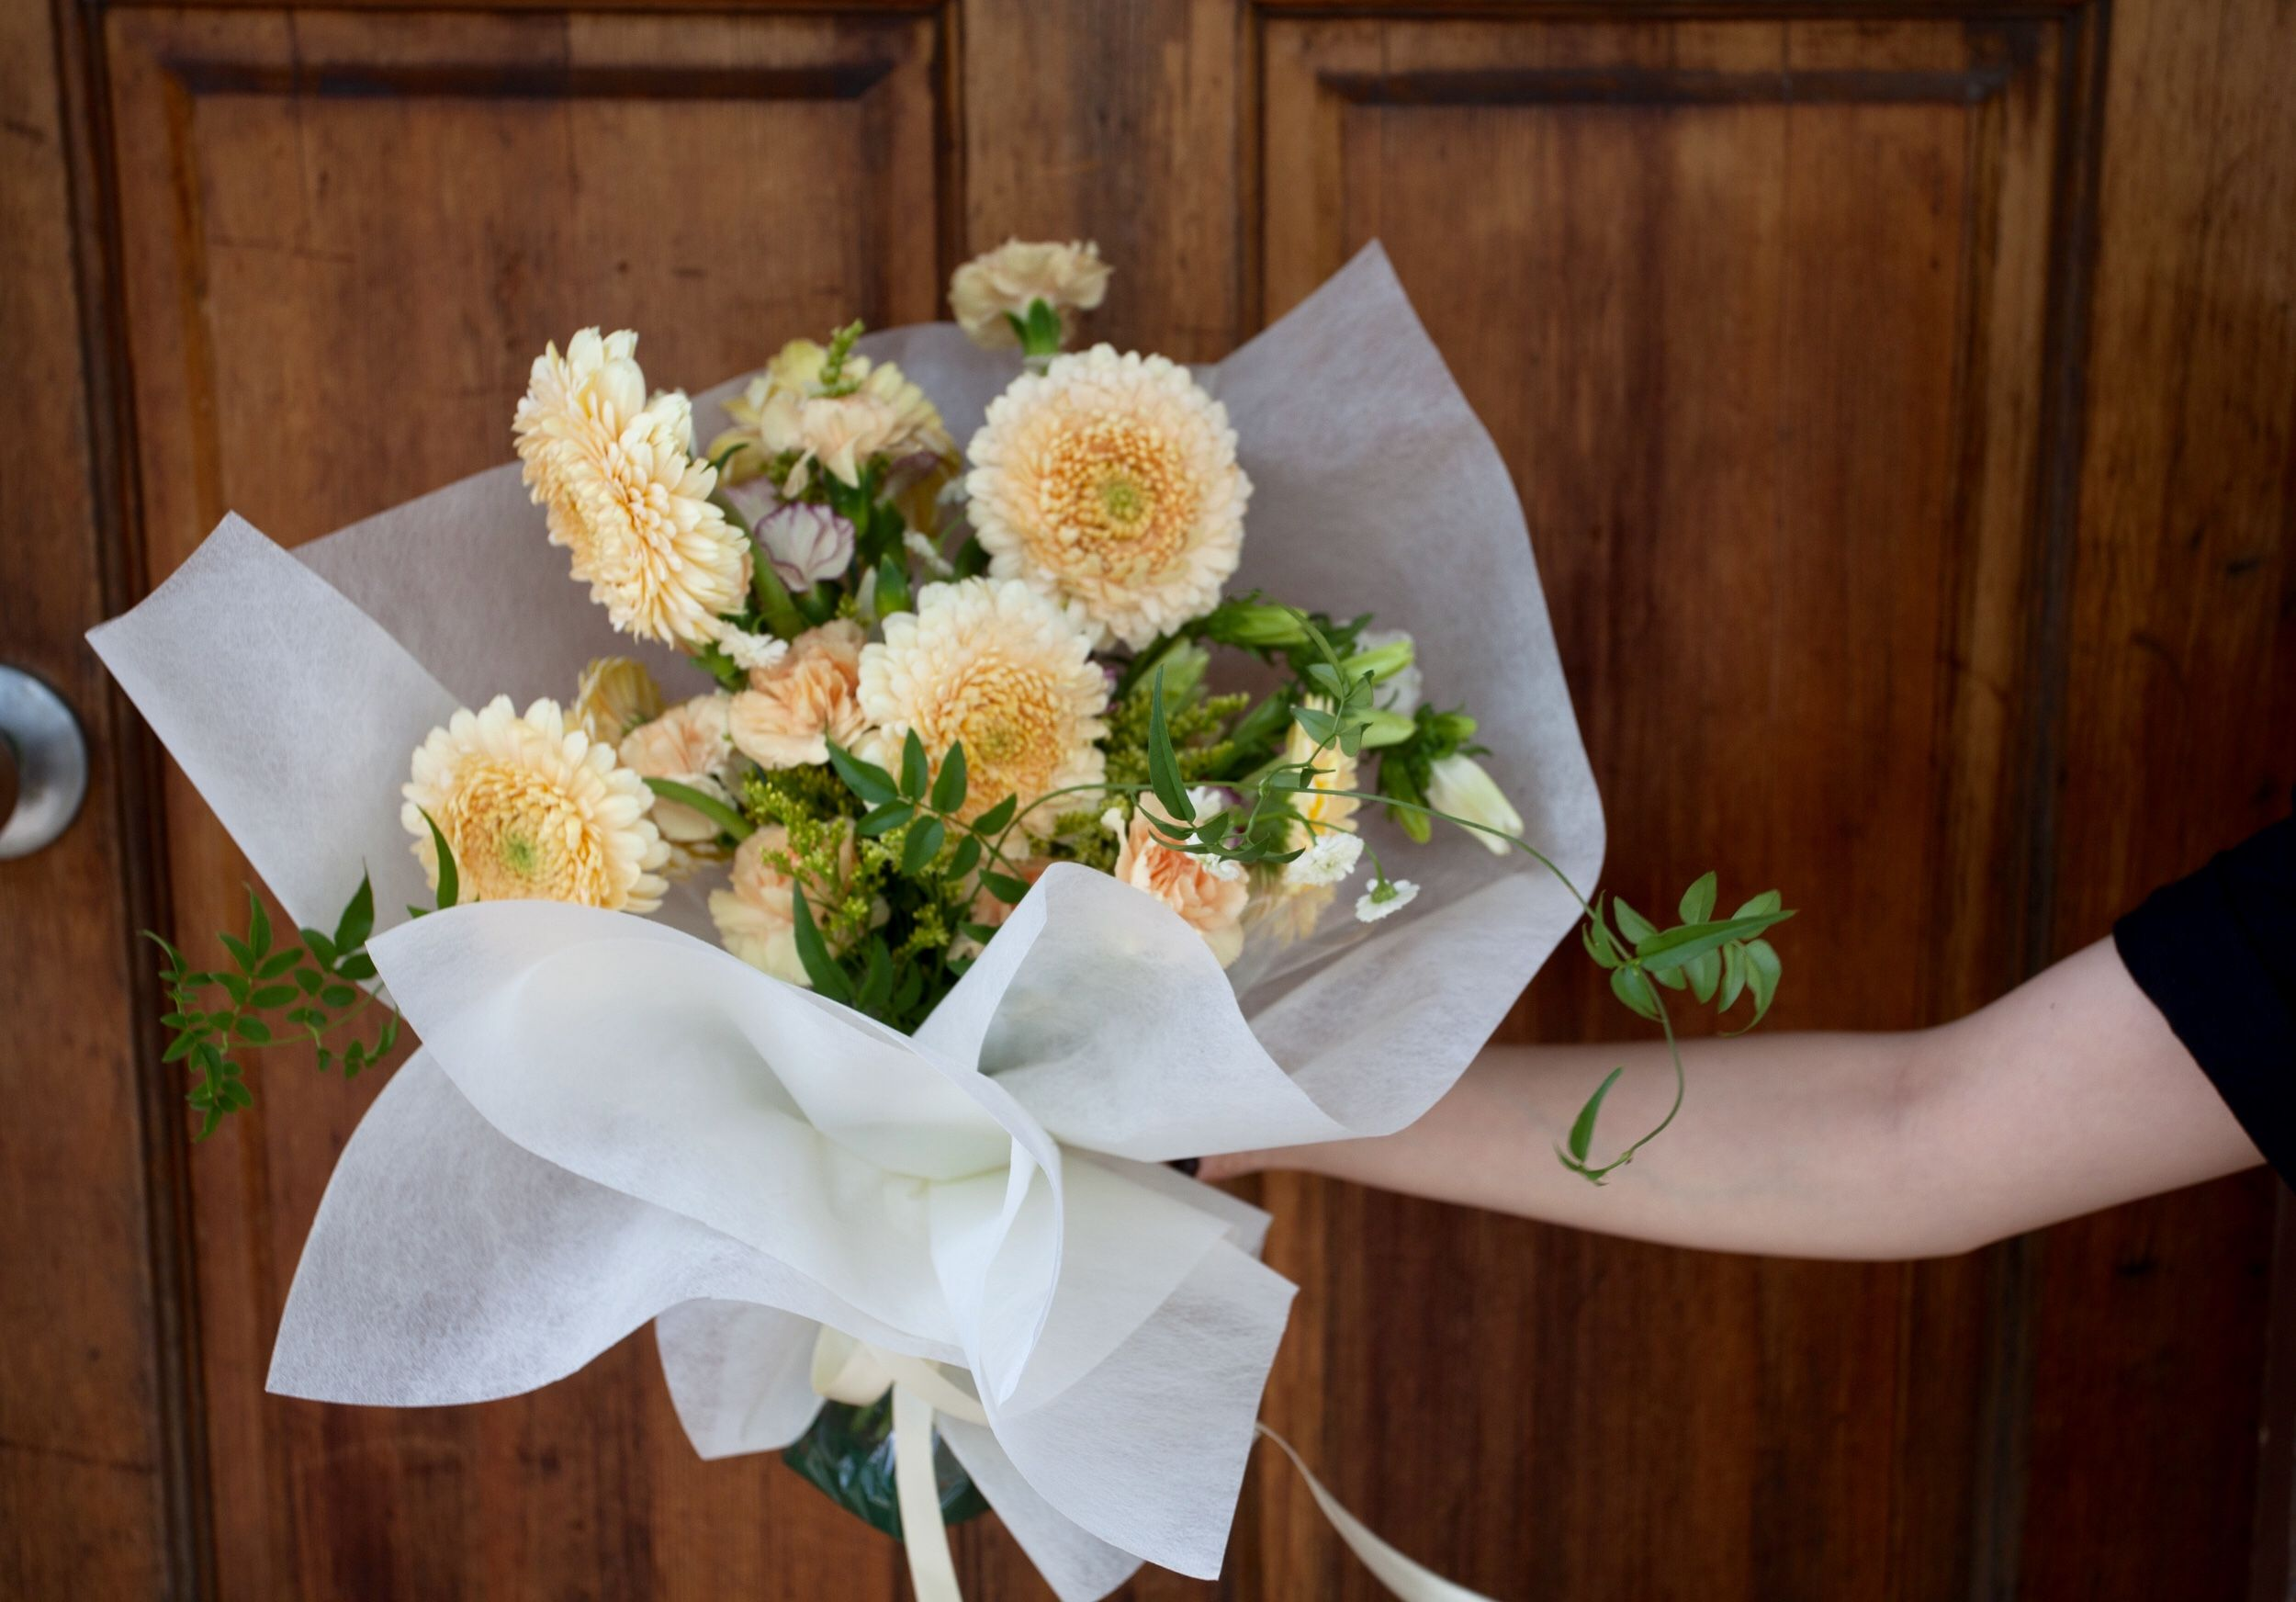 Local florist, flower delivery to Williamsburg, Greenpoint ...